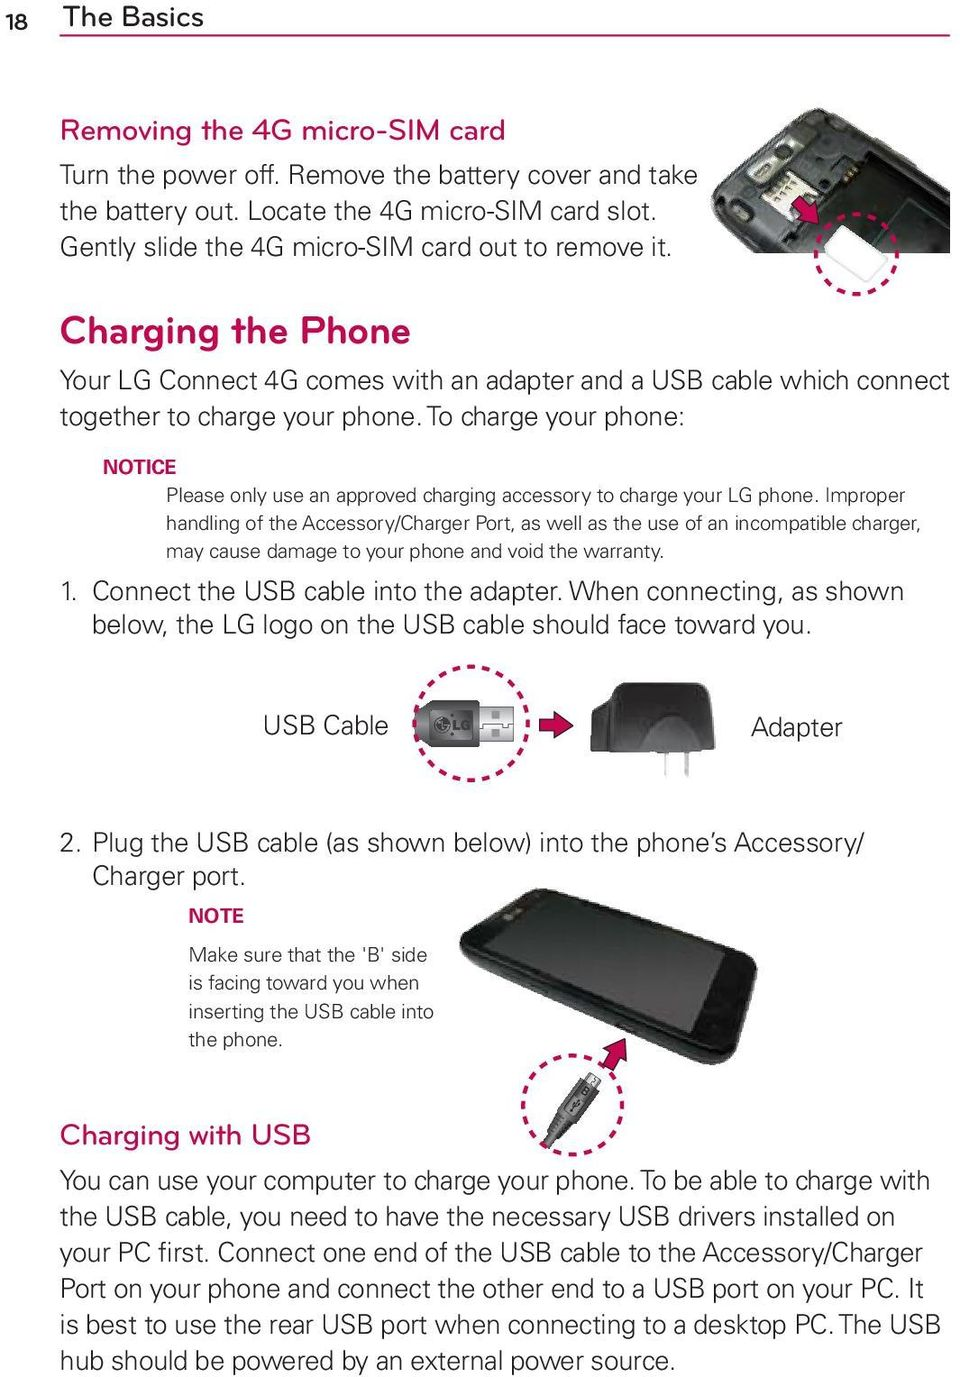 To charge your phone: NOTICE Please only use an approved charging accessory to charge your LG phone.